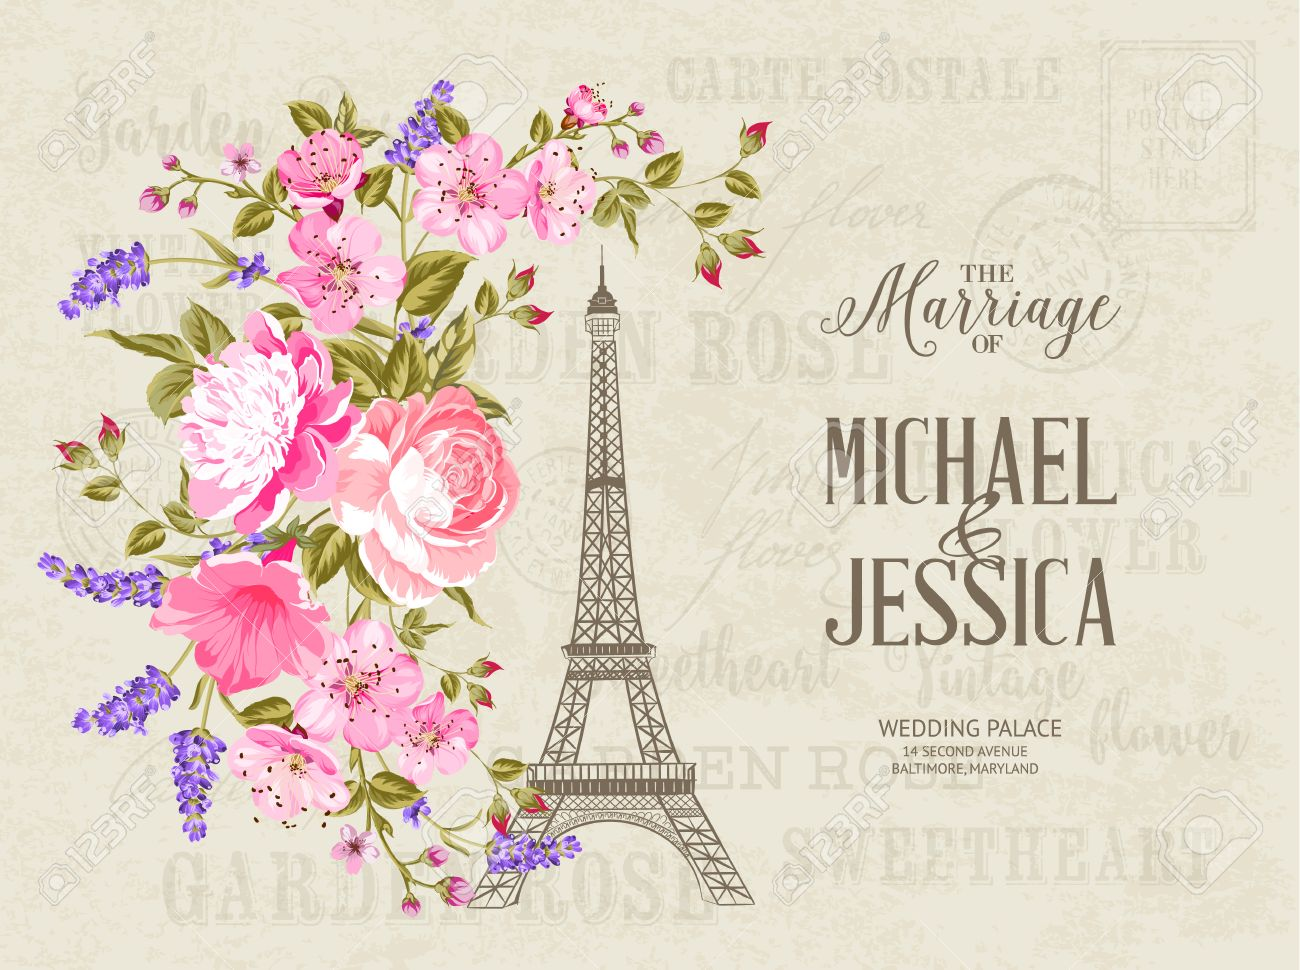 The marriage card wedding invitation card template eiffel tower wedding invitation card template eiffel tower simbol with spring blooming flowers stopboris Image collections